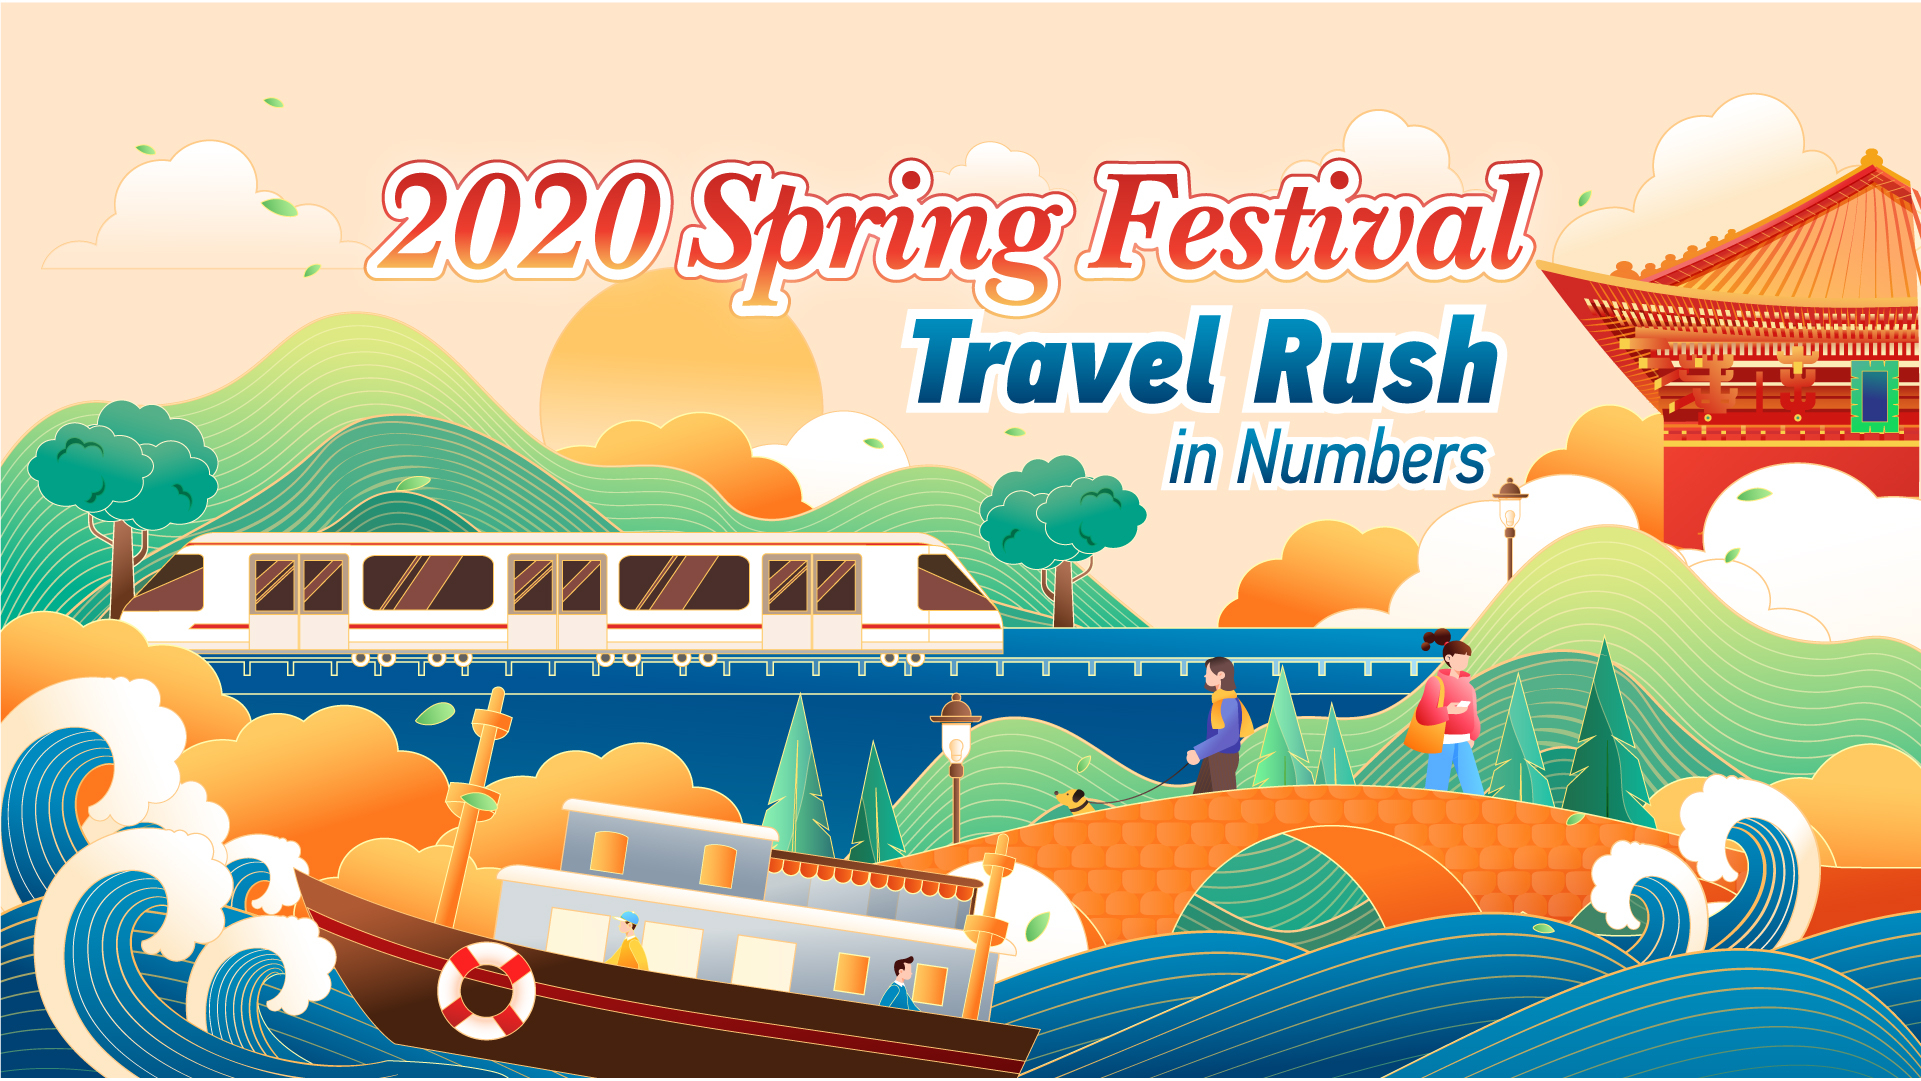 2020 Spring Festival travel rush in numbers